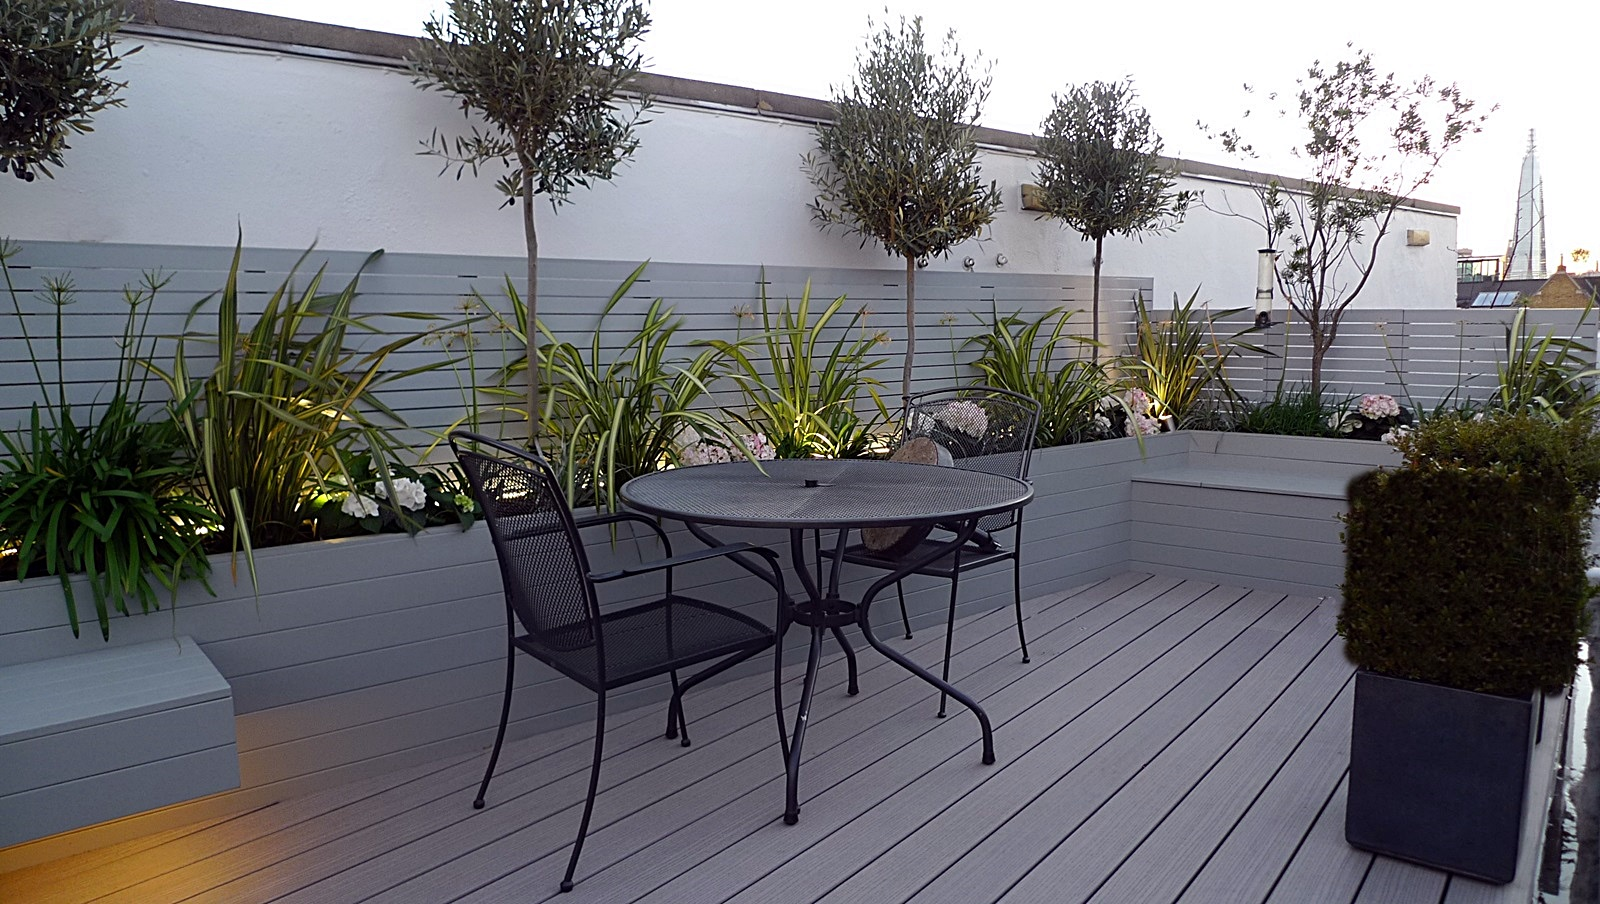 1000 images about garden inspiration on pinterest for Garden decking designs uk